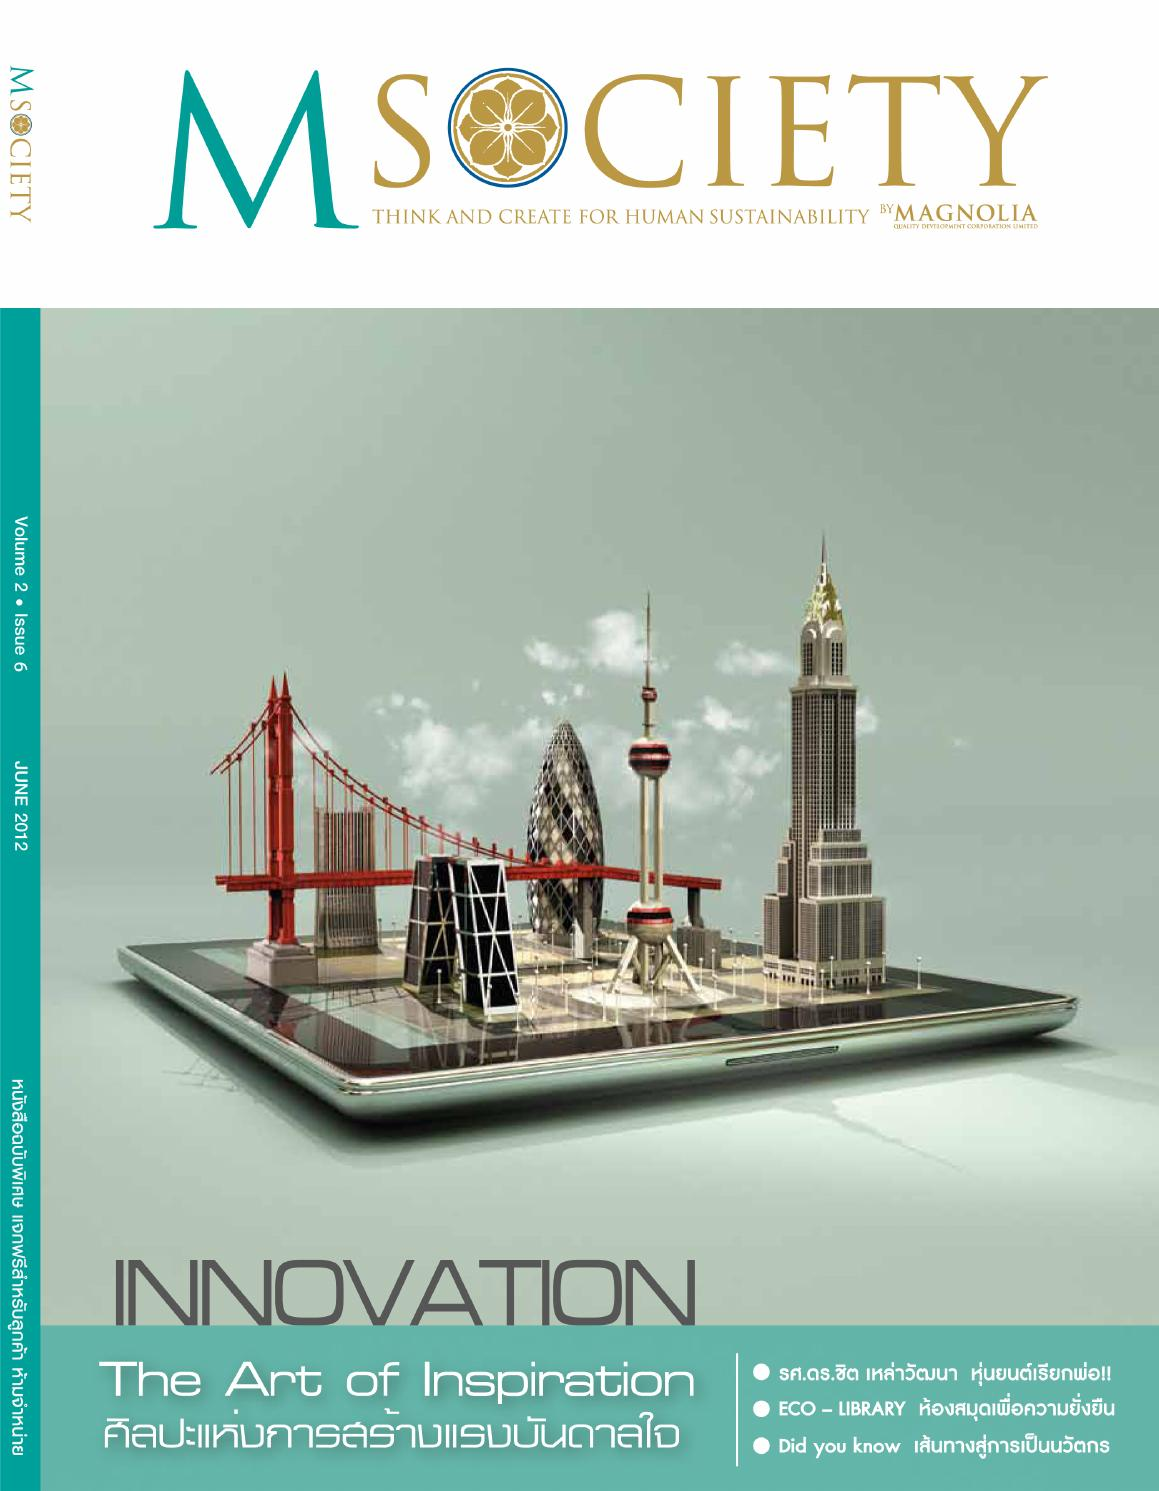 M Society Issue 6 Innovation The Art Of Inspiration By Mqdc Issuu